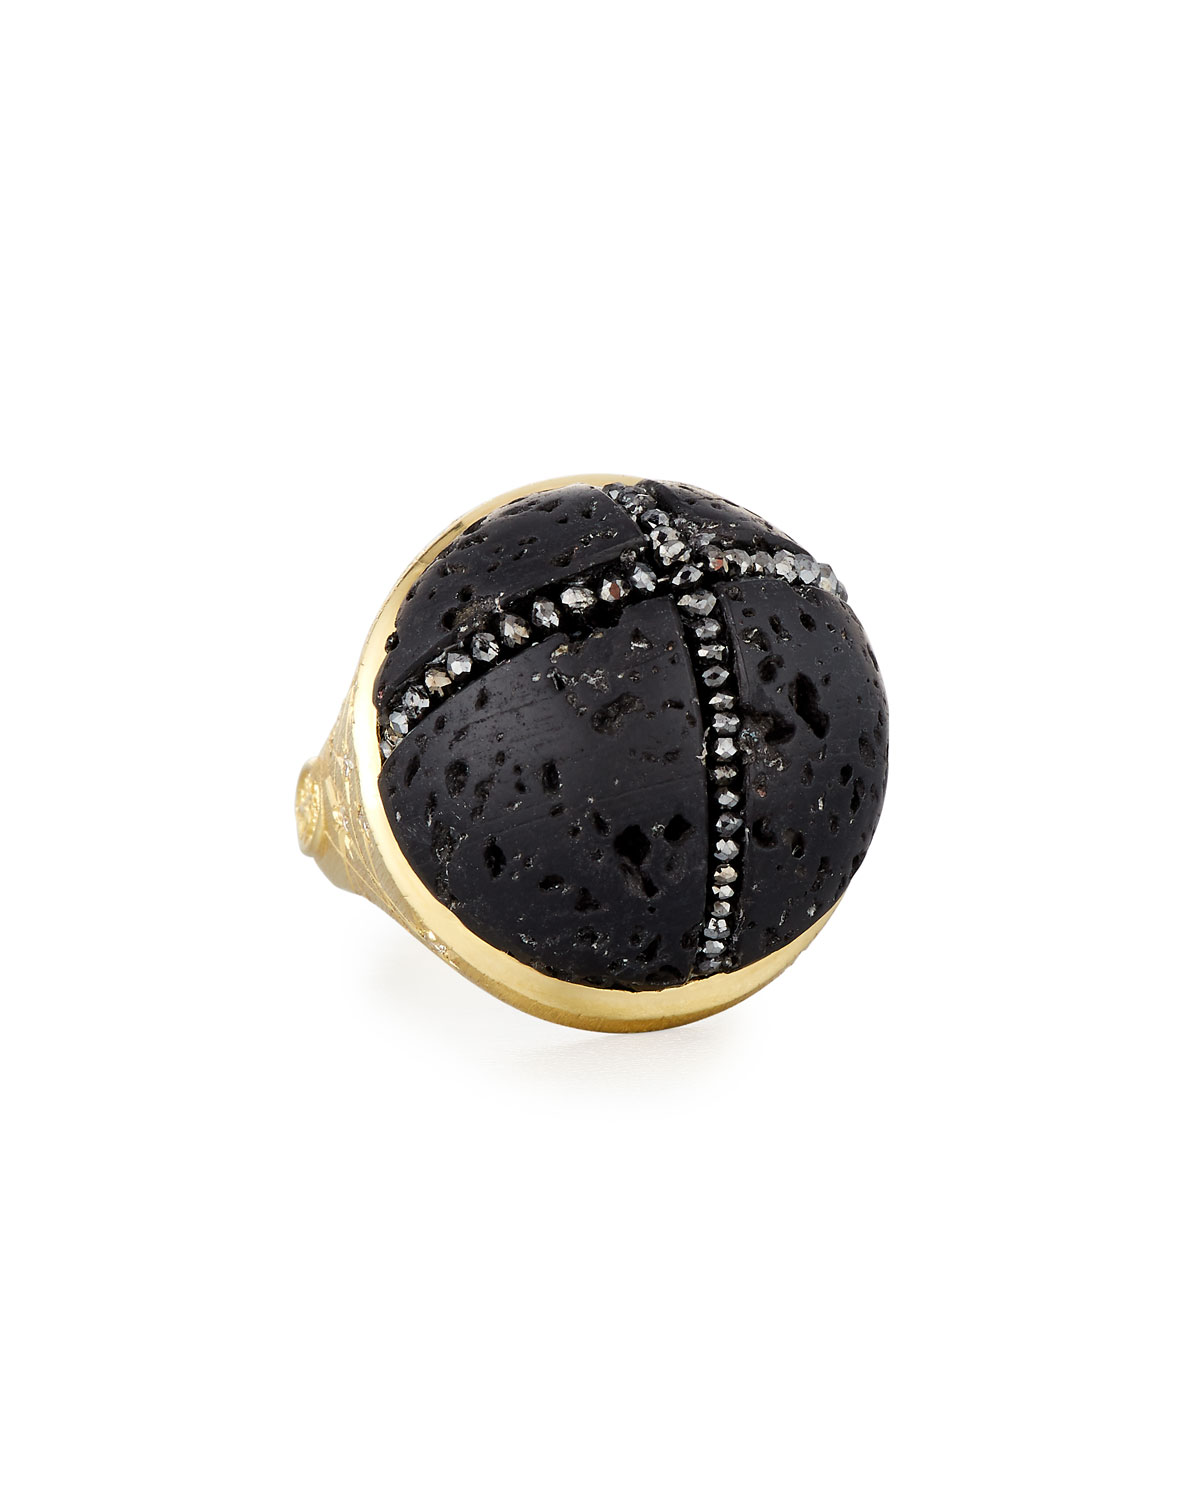 ADAM FOSTER FINE JEWELRY 18K Constellation Lava Rock Ring W/ Black Diamonds